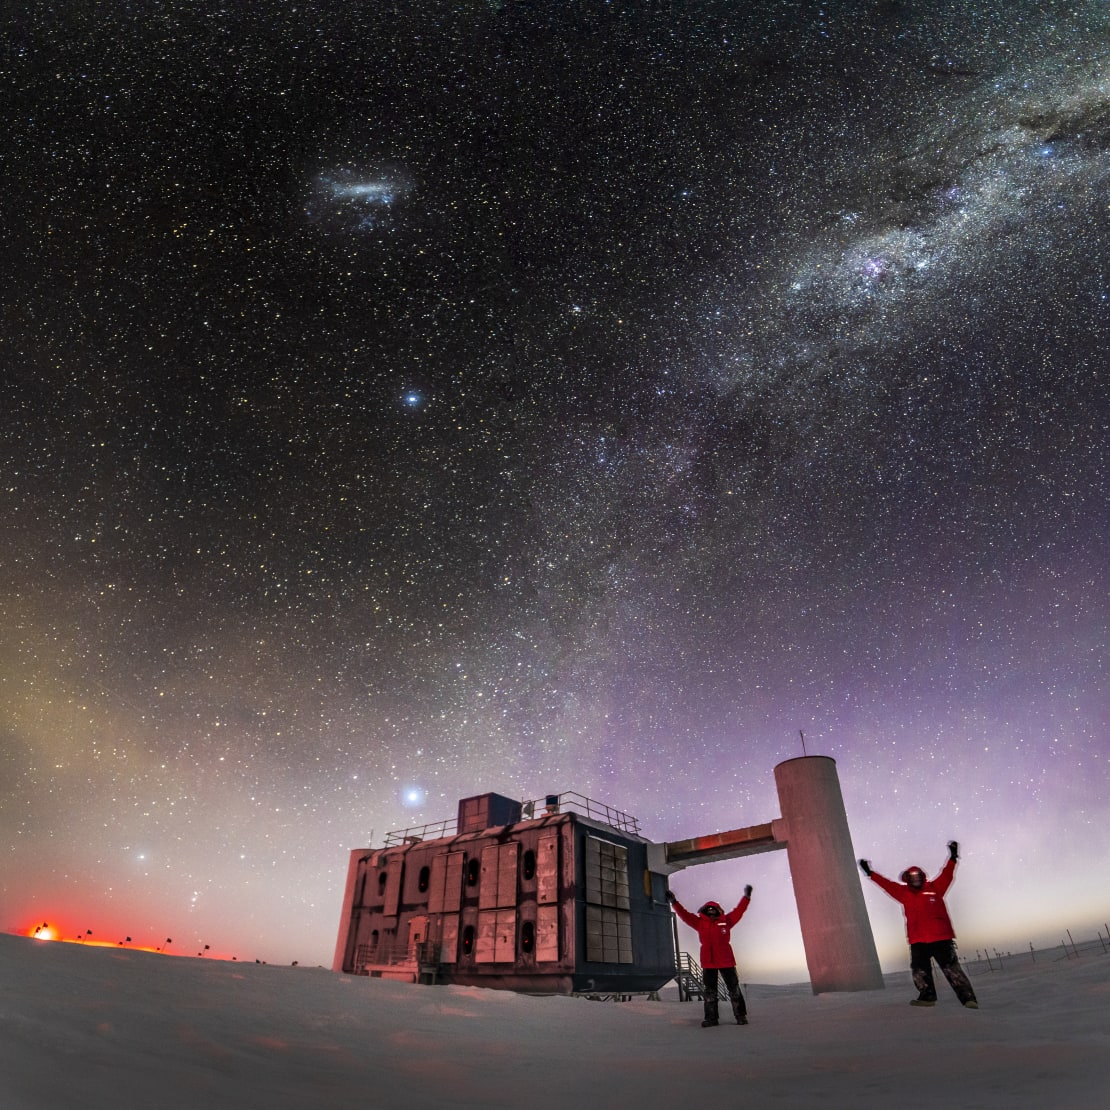 Winterovers Martin and Josh taking selfi outside the IceCube Lab, with arms up, stars in sky and sunlight along horizon.